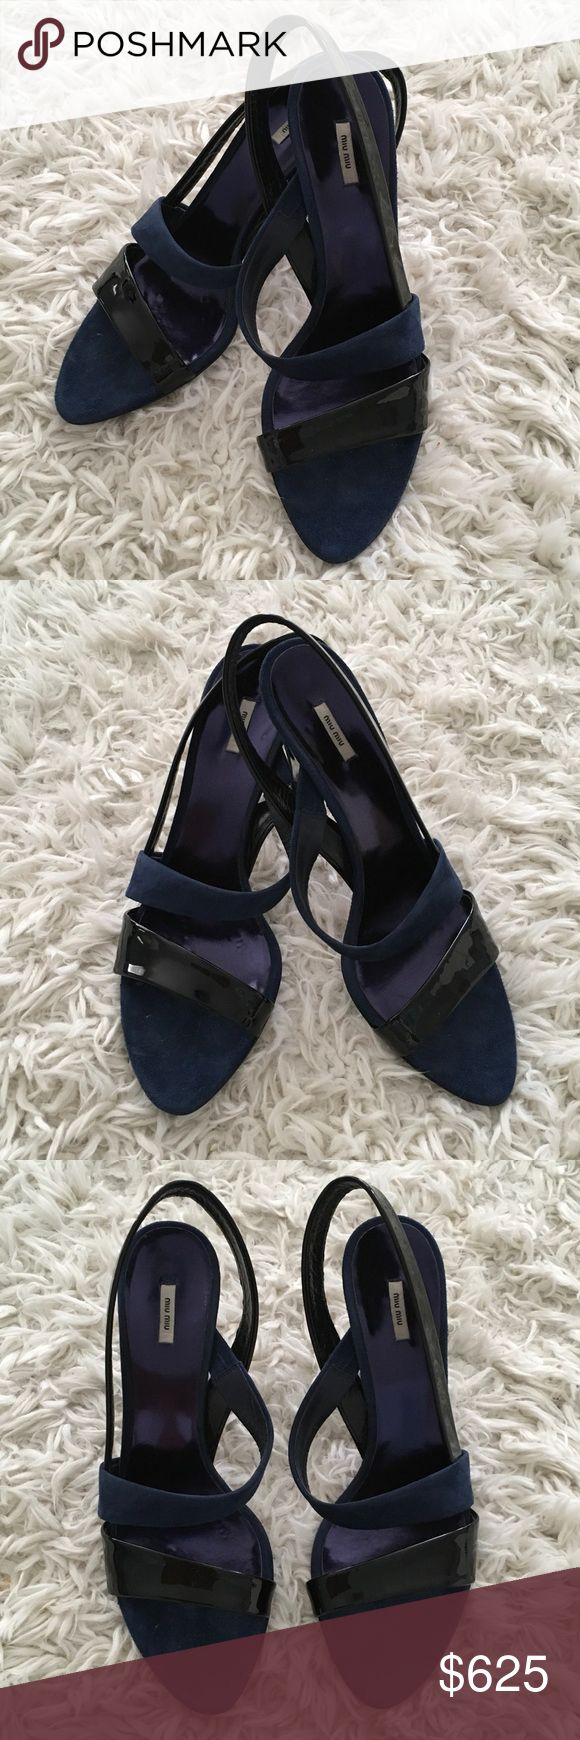 Miu Miu Strappy Heel Sandals 👠 These designer Miu Miu shoes are in great condition!  These shoes are navy blue suede with black paten leather.  So stylish yet classic! They are comfortable and easy to walk in. Perfect for any season! Miu Miu Shoes